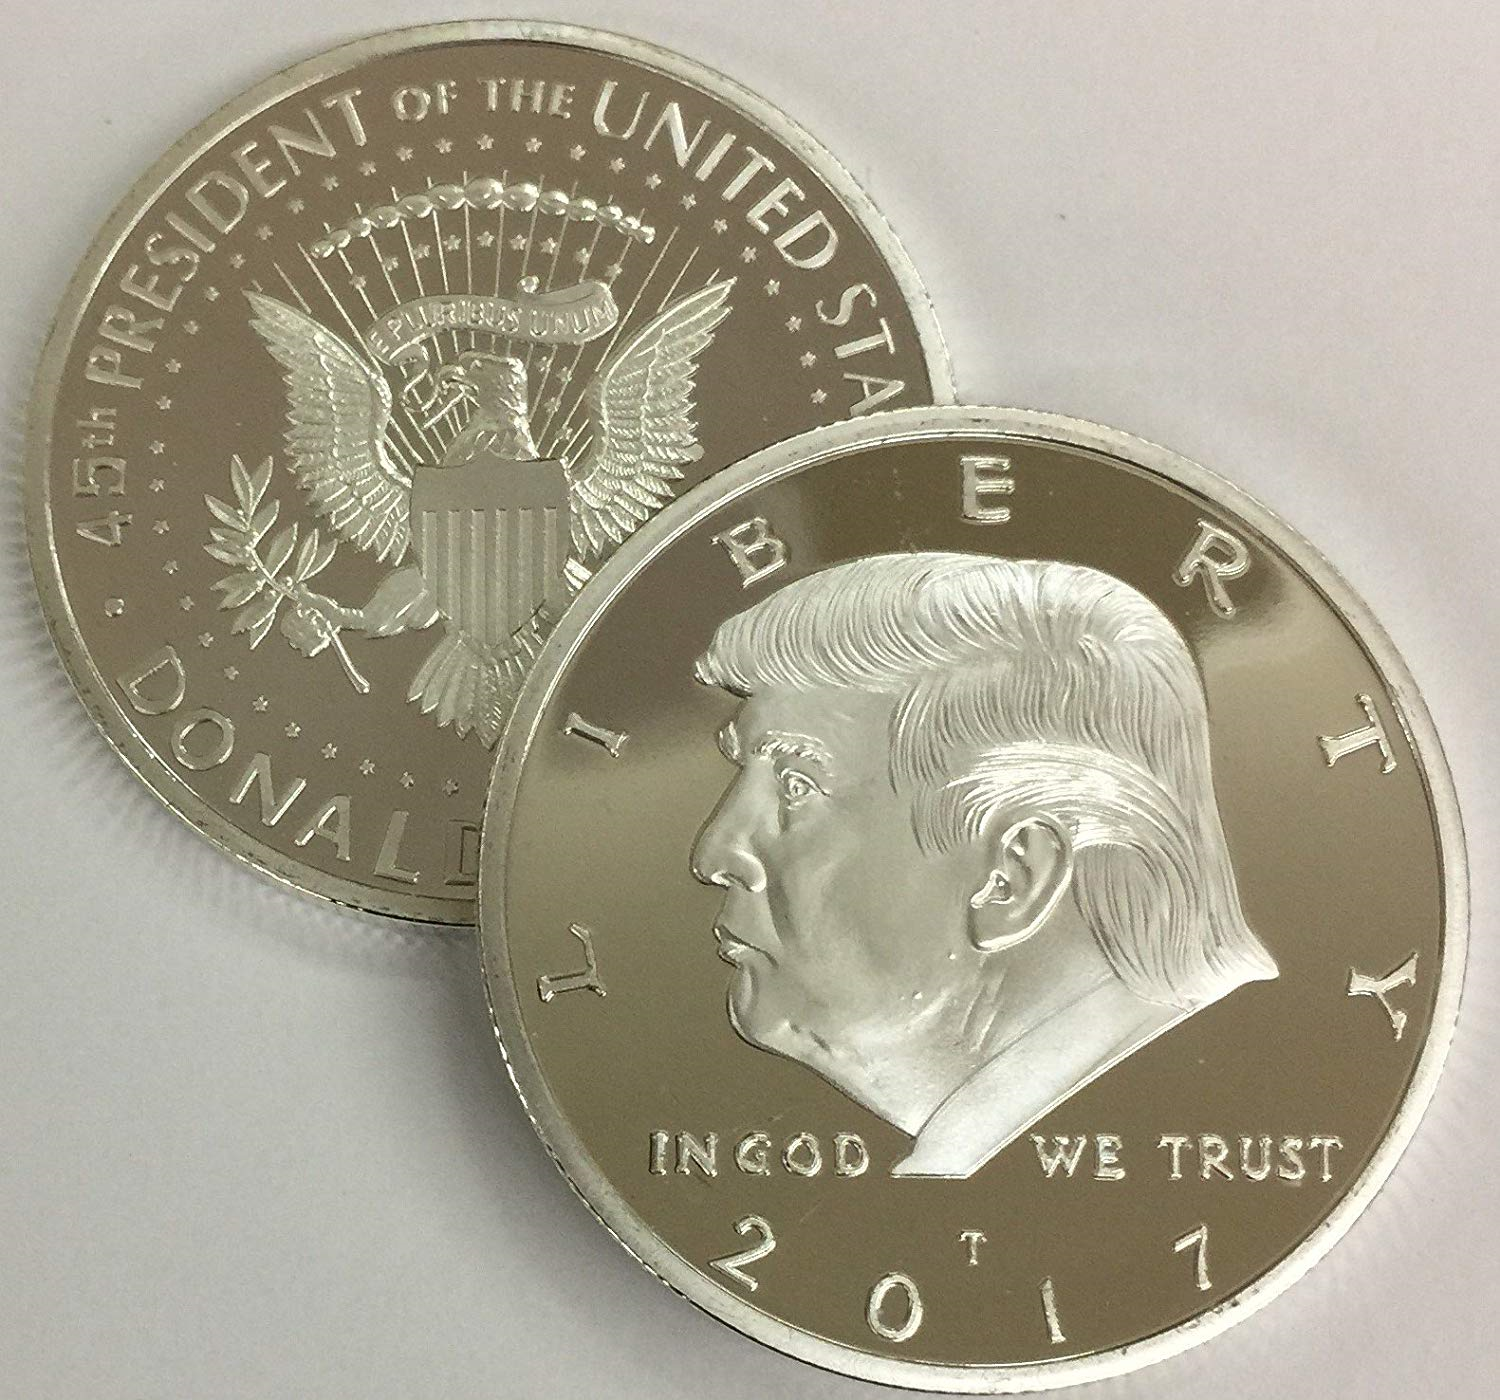 2017 Donald Trump Slivery Coin Make America GREAT Again 45th President Liberty